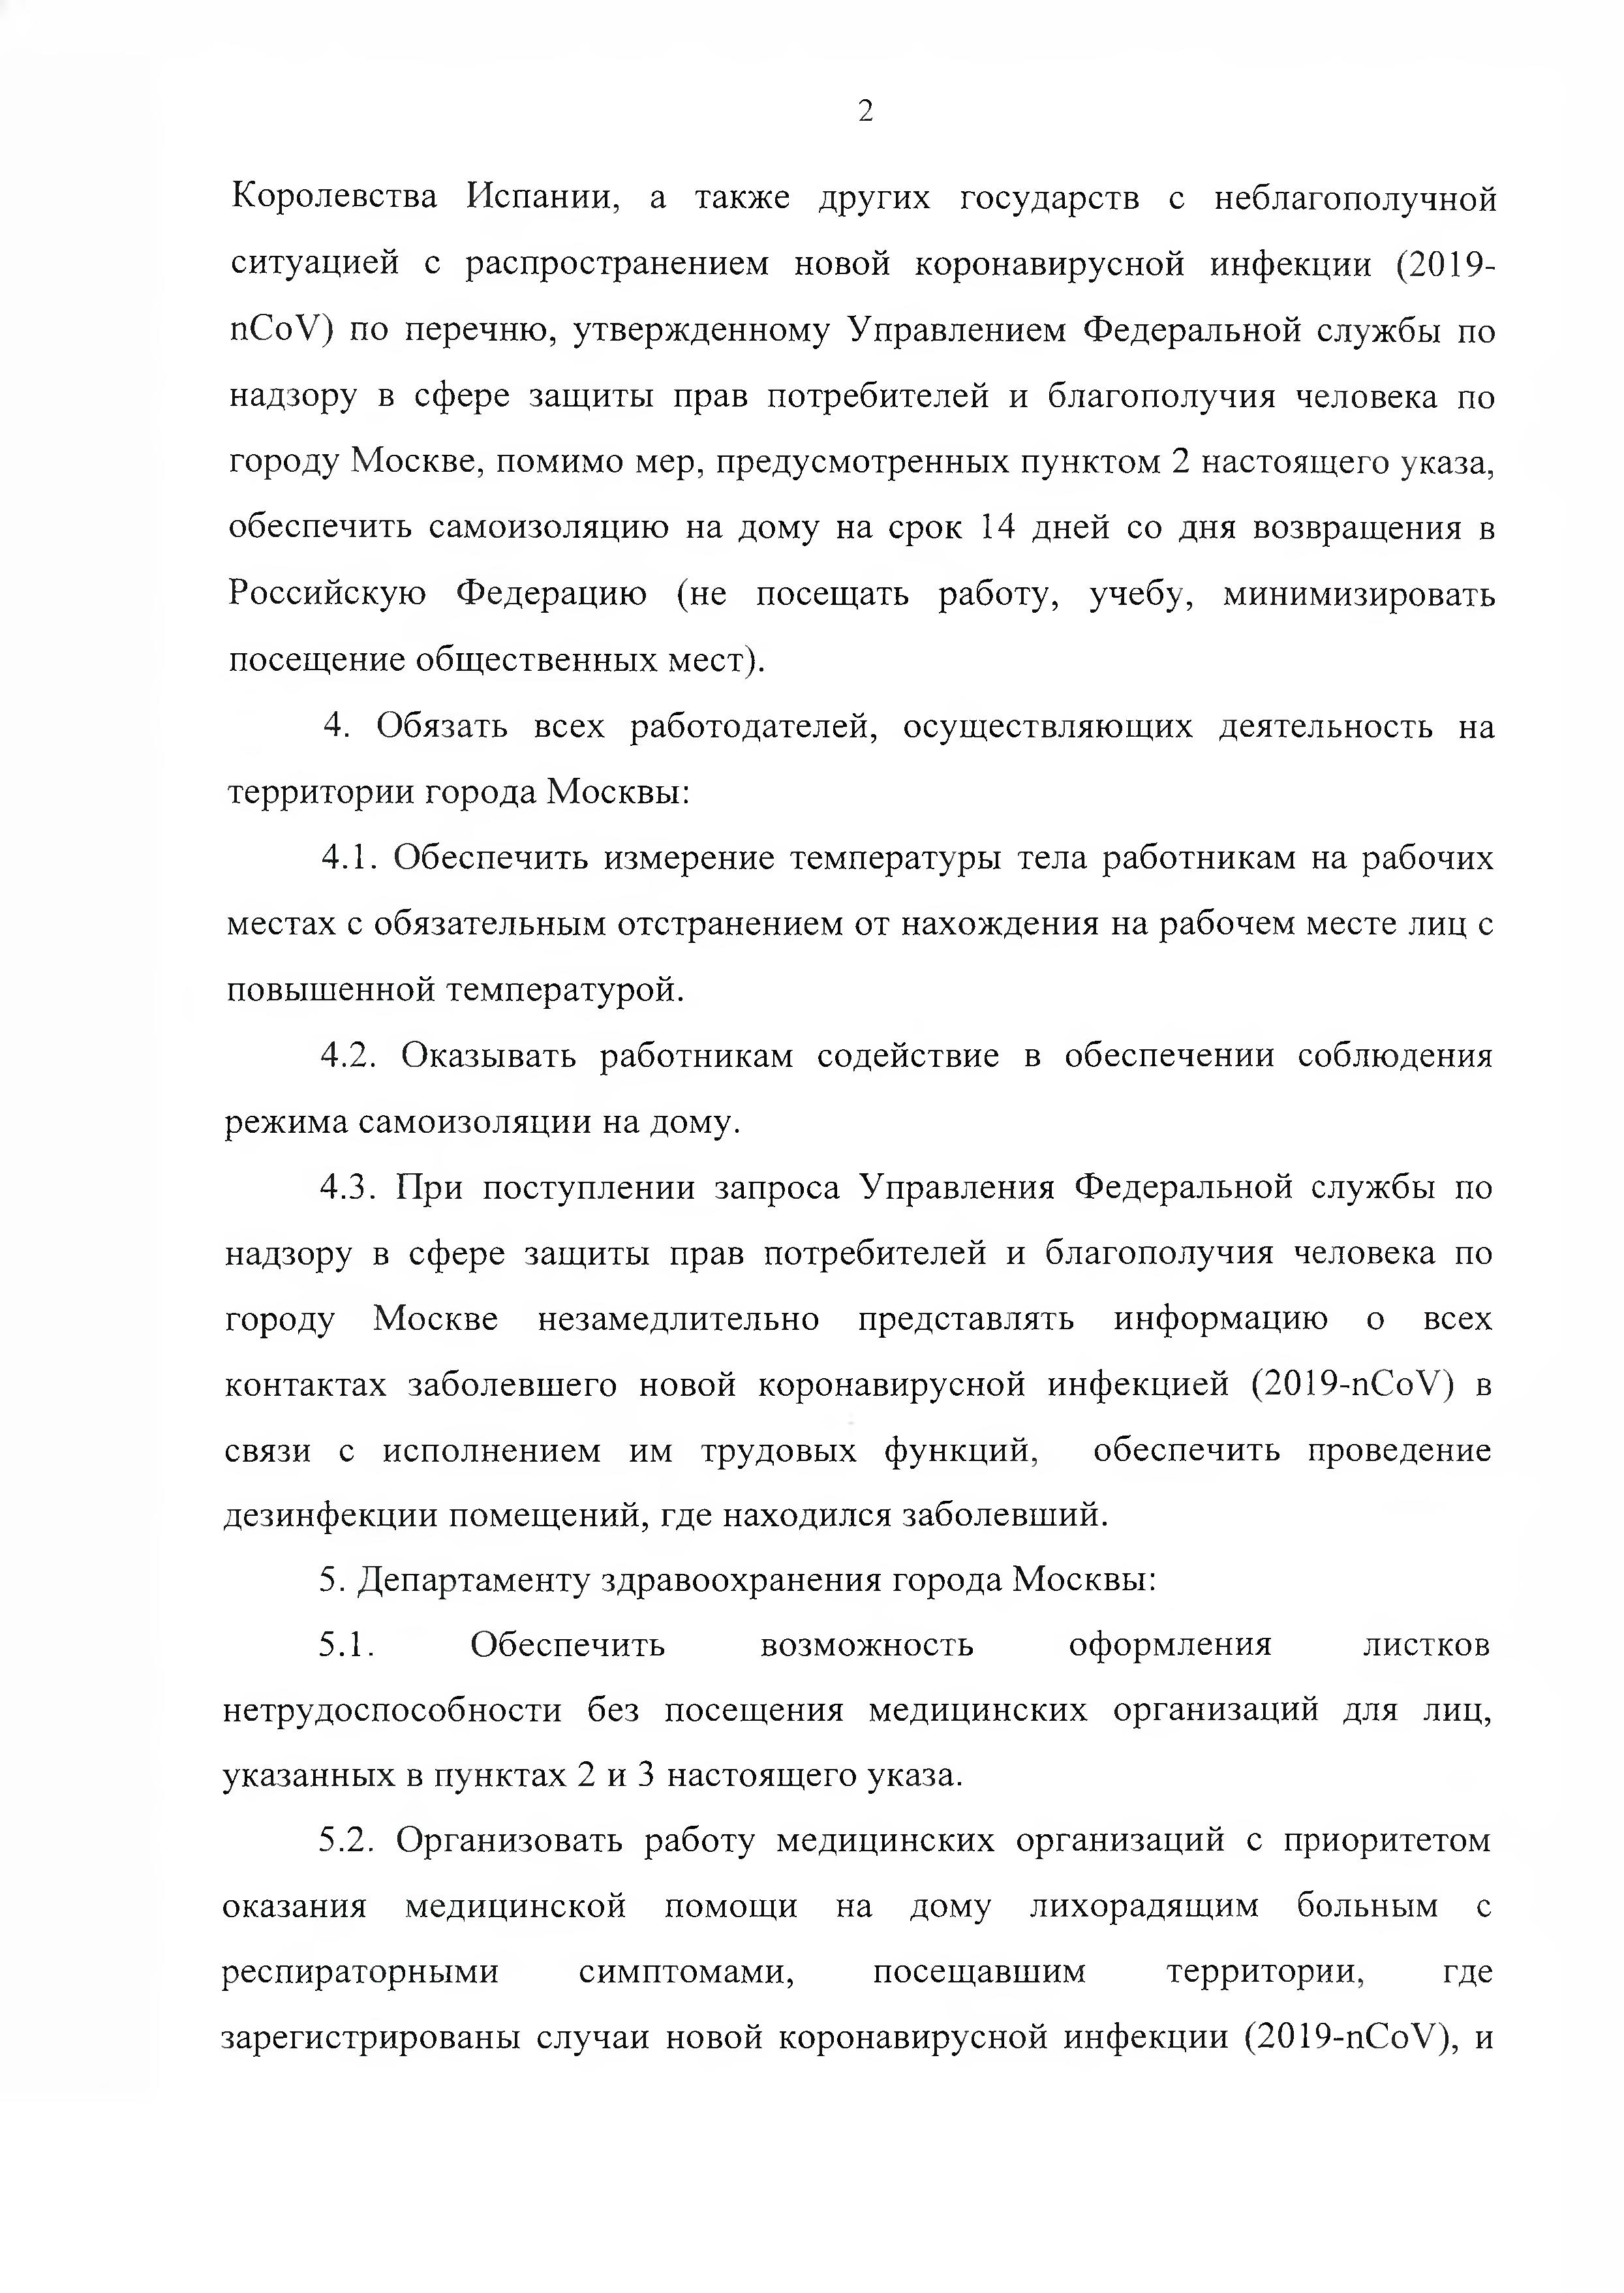 Decree from the Mayor of Moscow.2